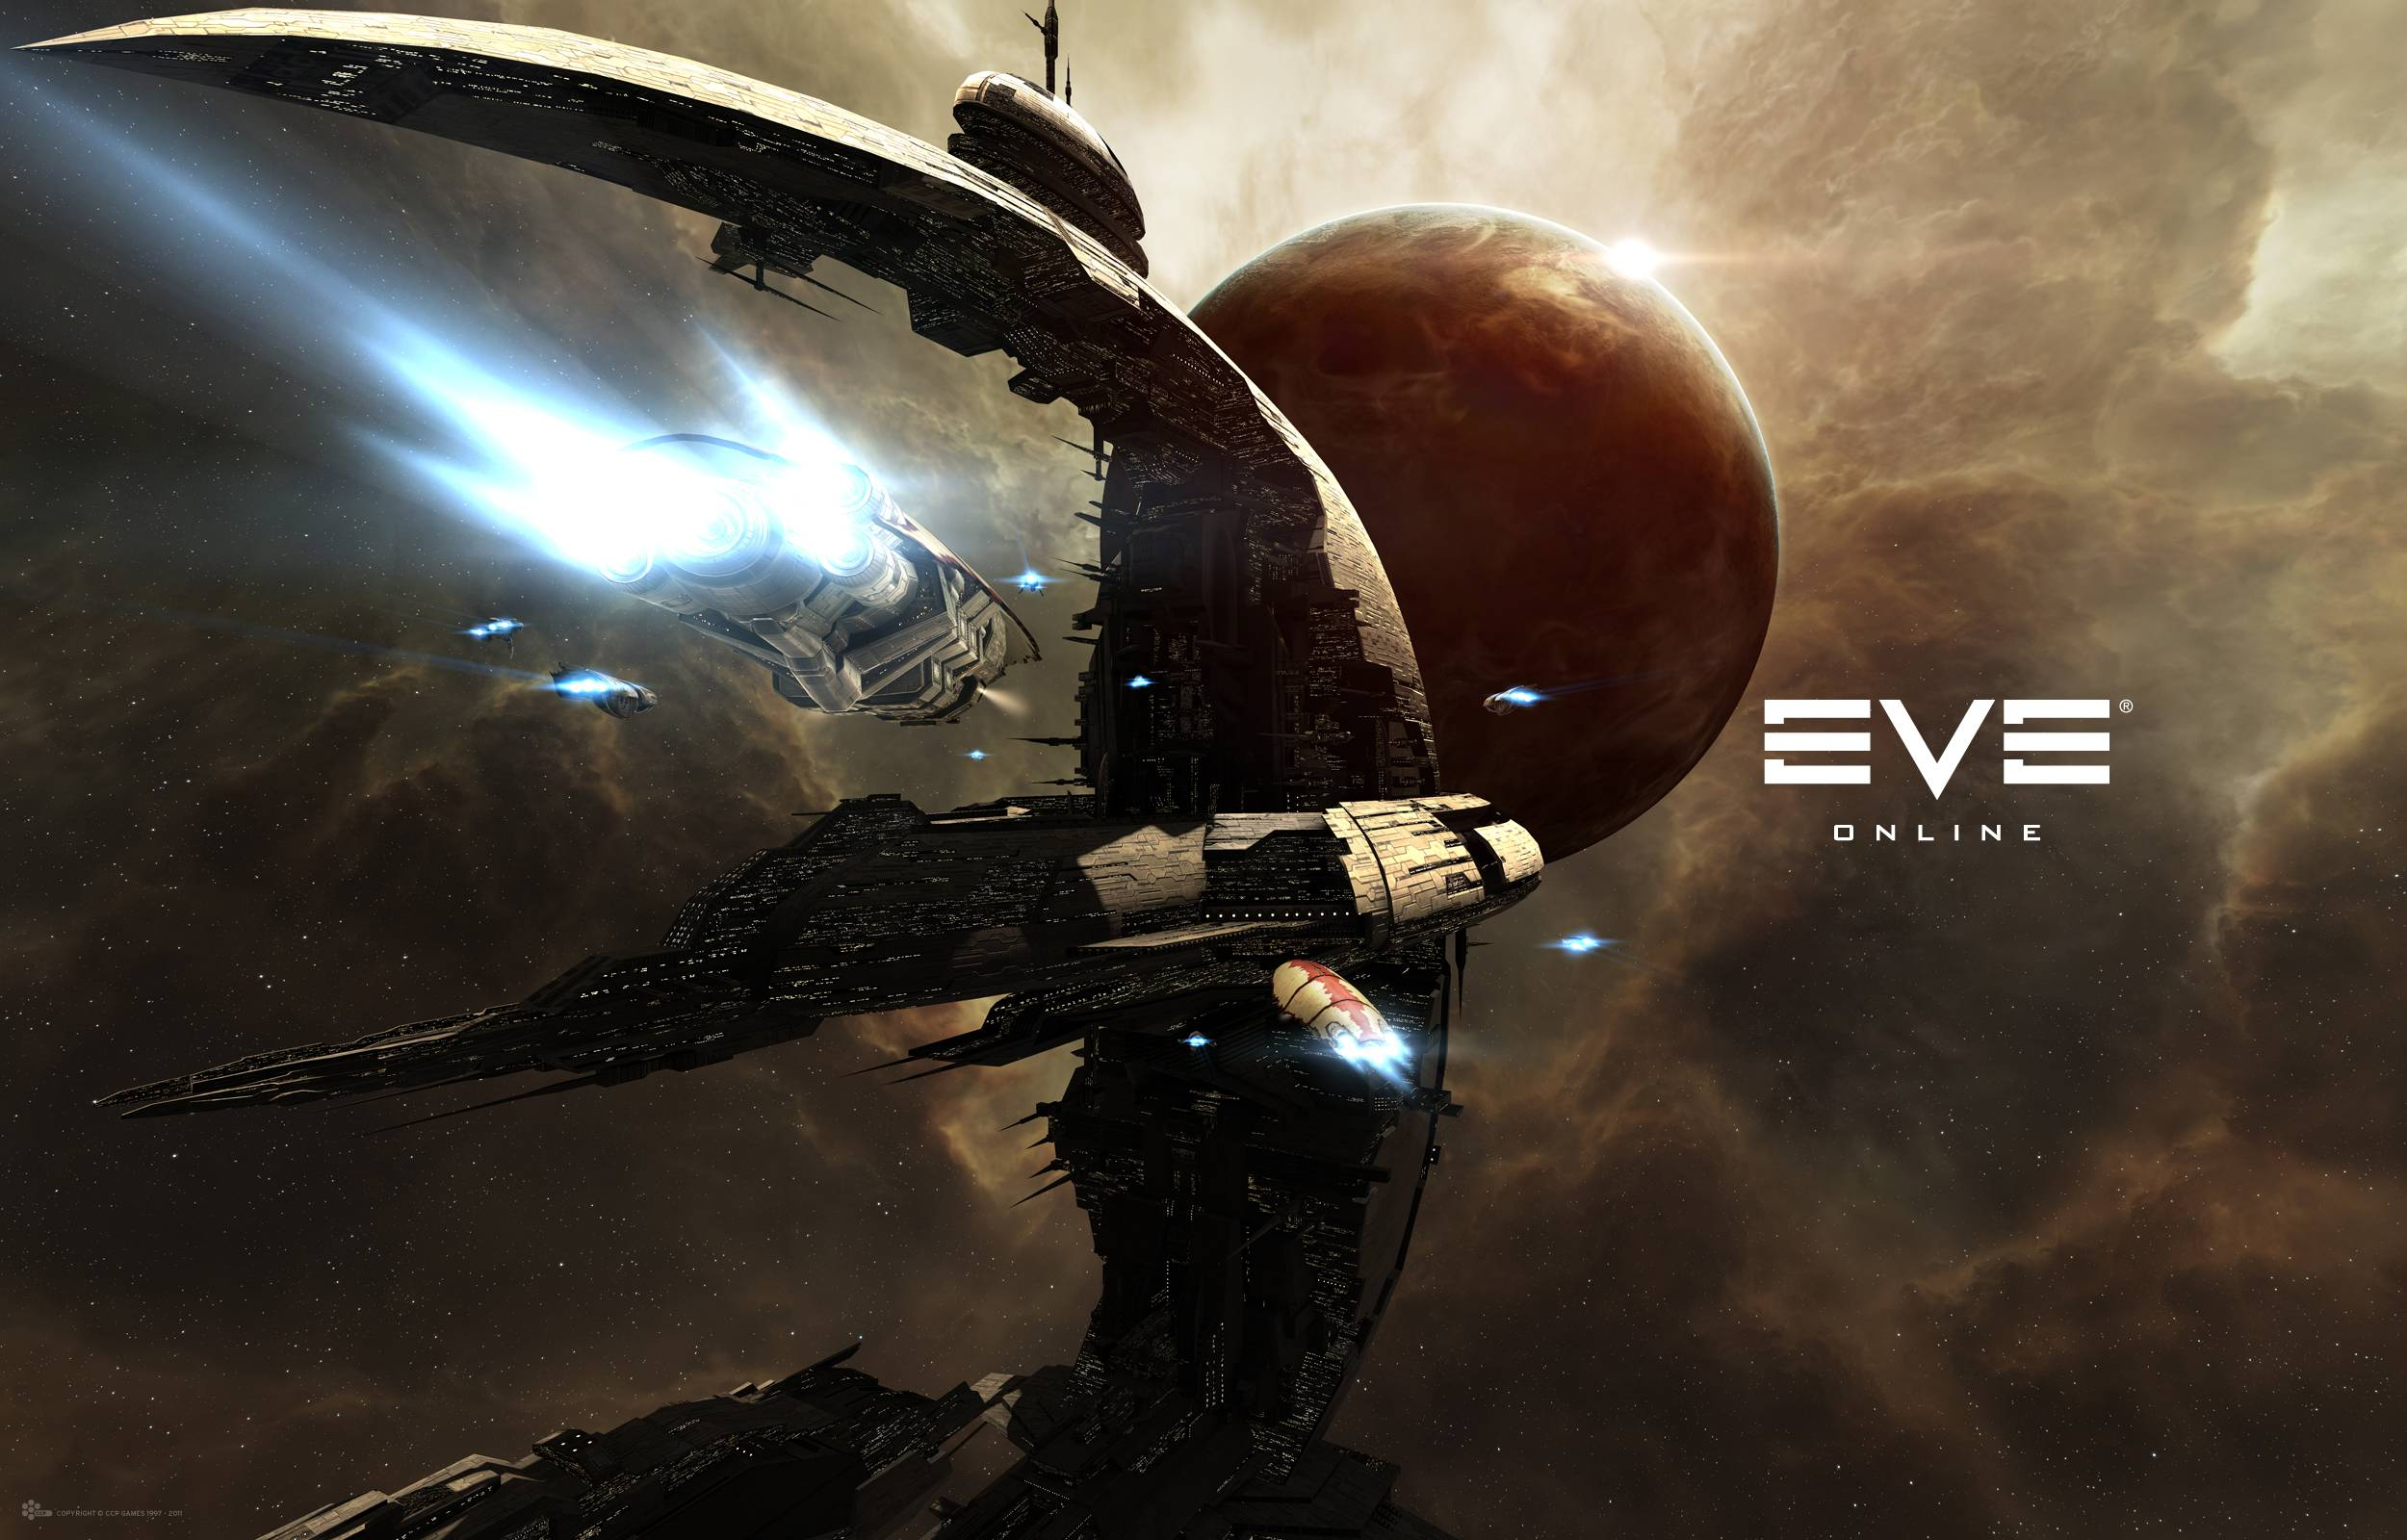 eve online wallpaper  EVE Online Wallpapers - Wallpaper Cave